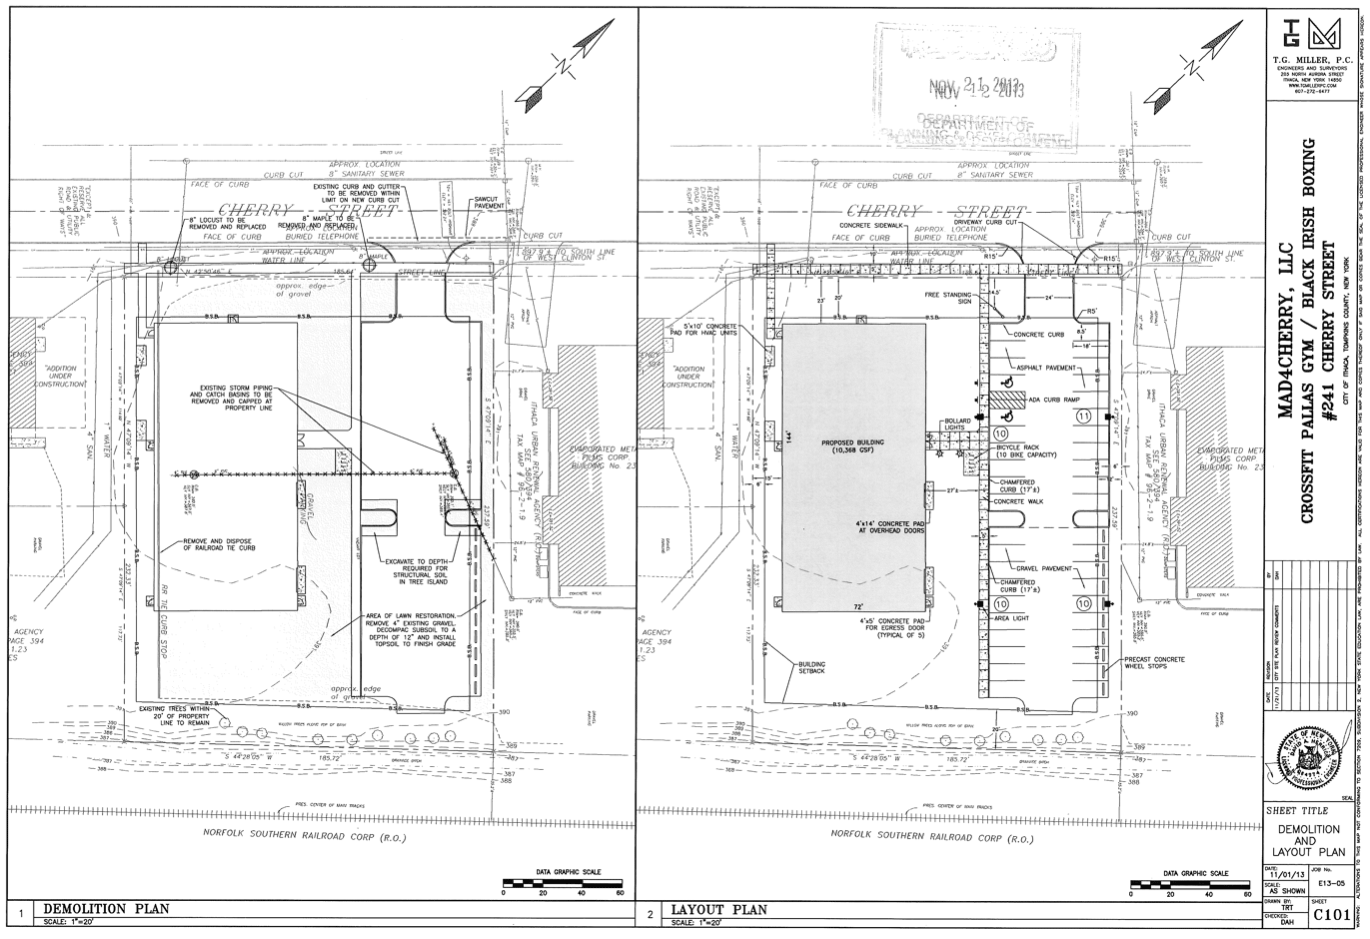 Crossfit Cherry Street Site Plan